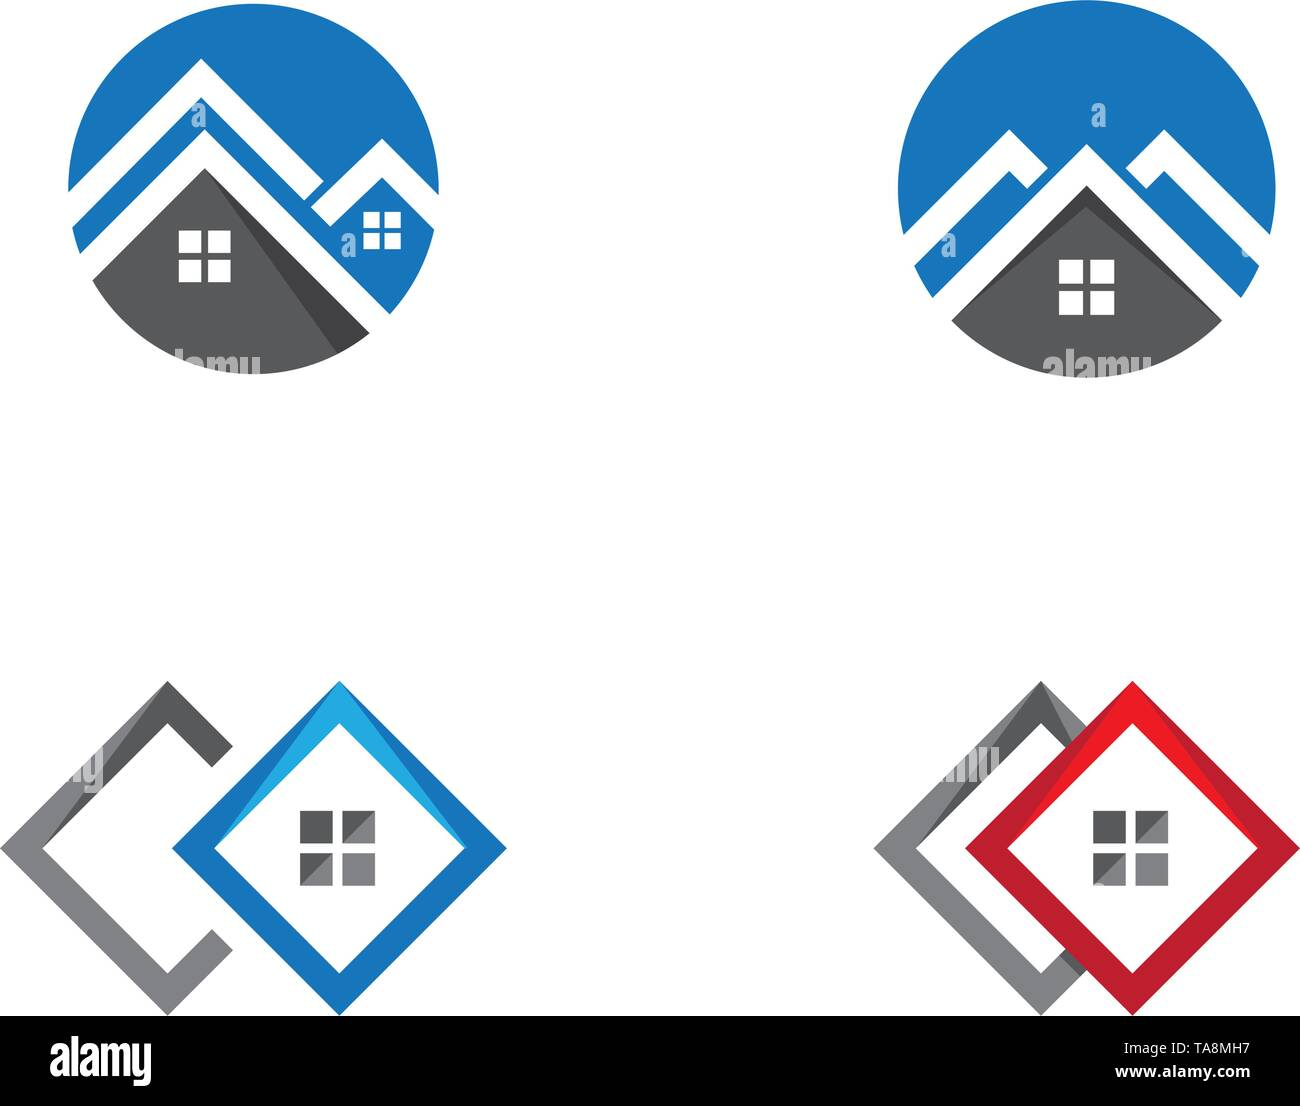 Real Estate , Property and Construction Logo design - Stock Image